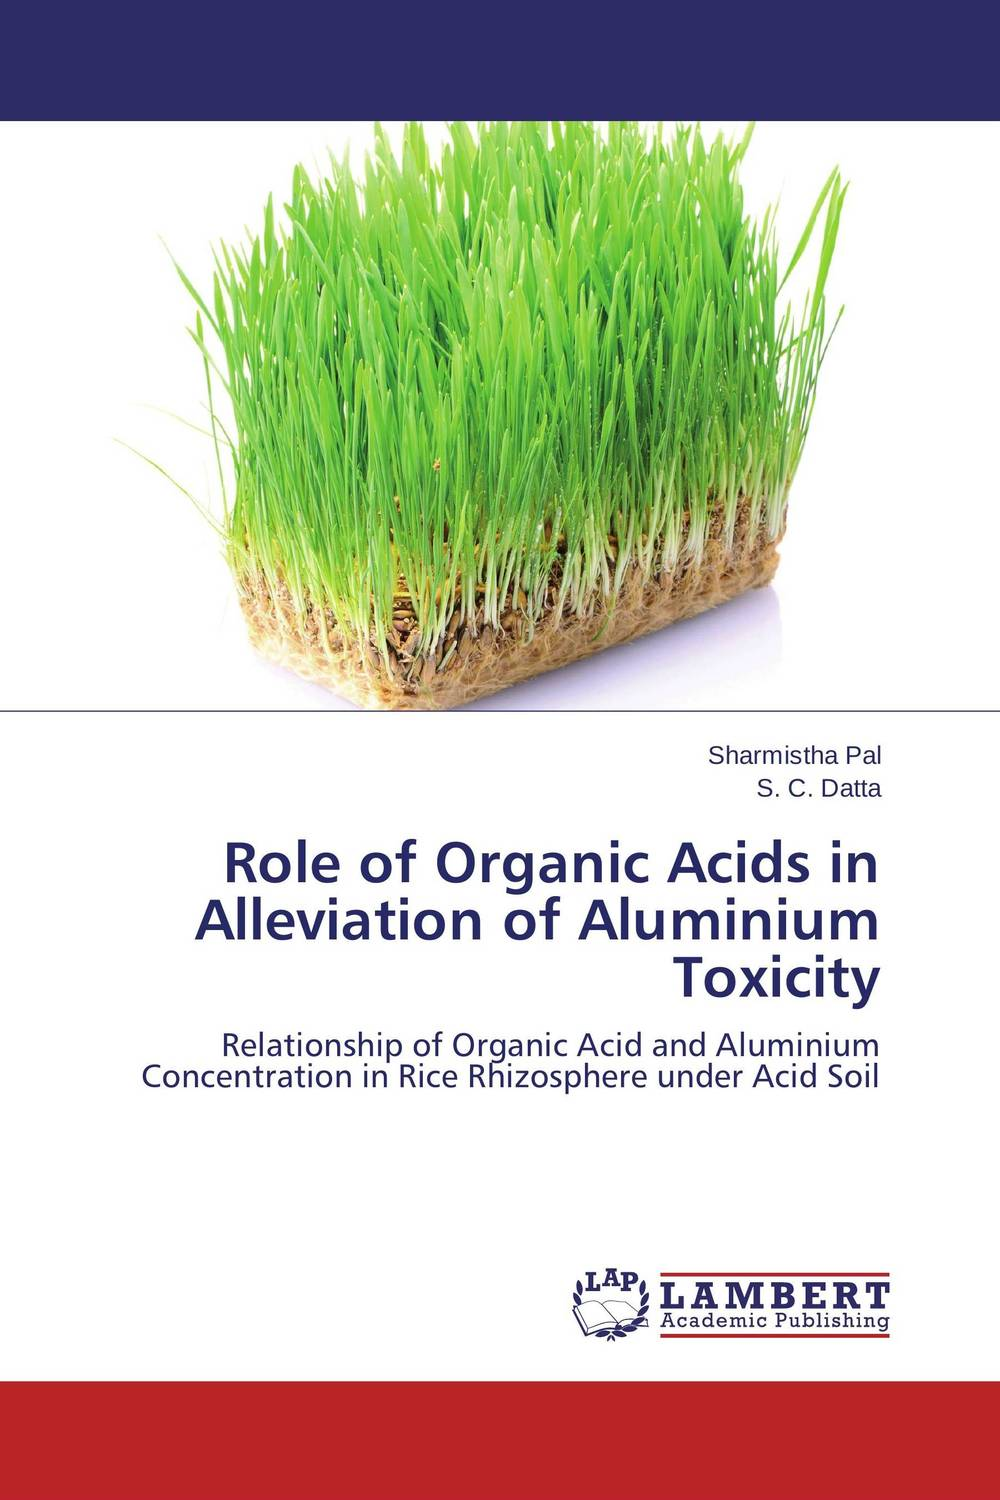 Role of Organic Acids in Alleviation of Aluminium Toxicity dennis hall g boronic acids preparation and applications in organic synthesis medicine and materials